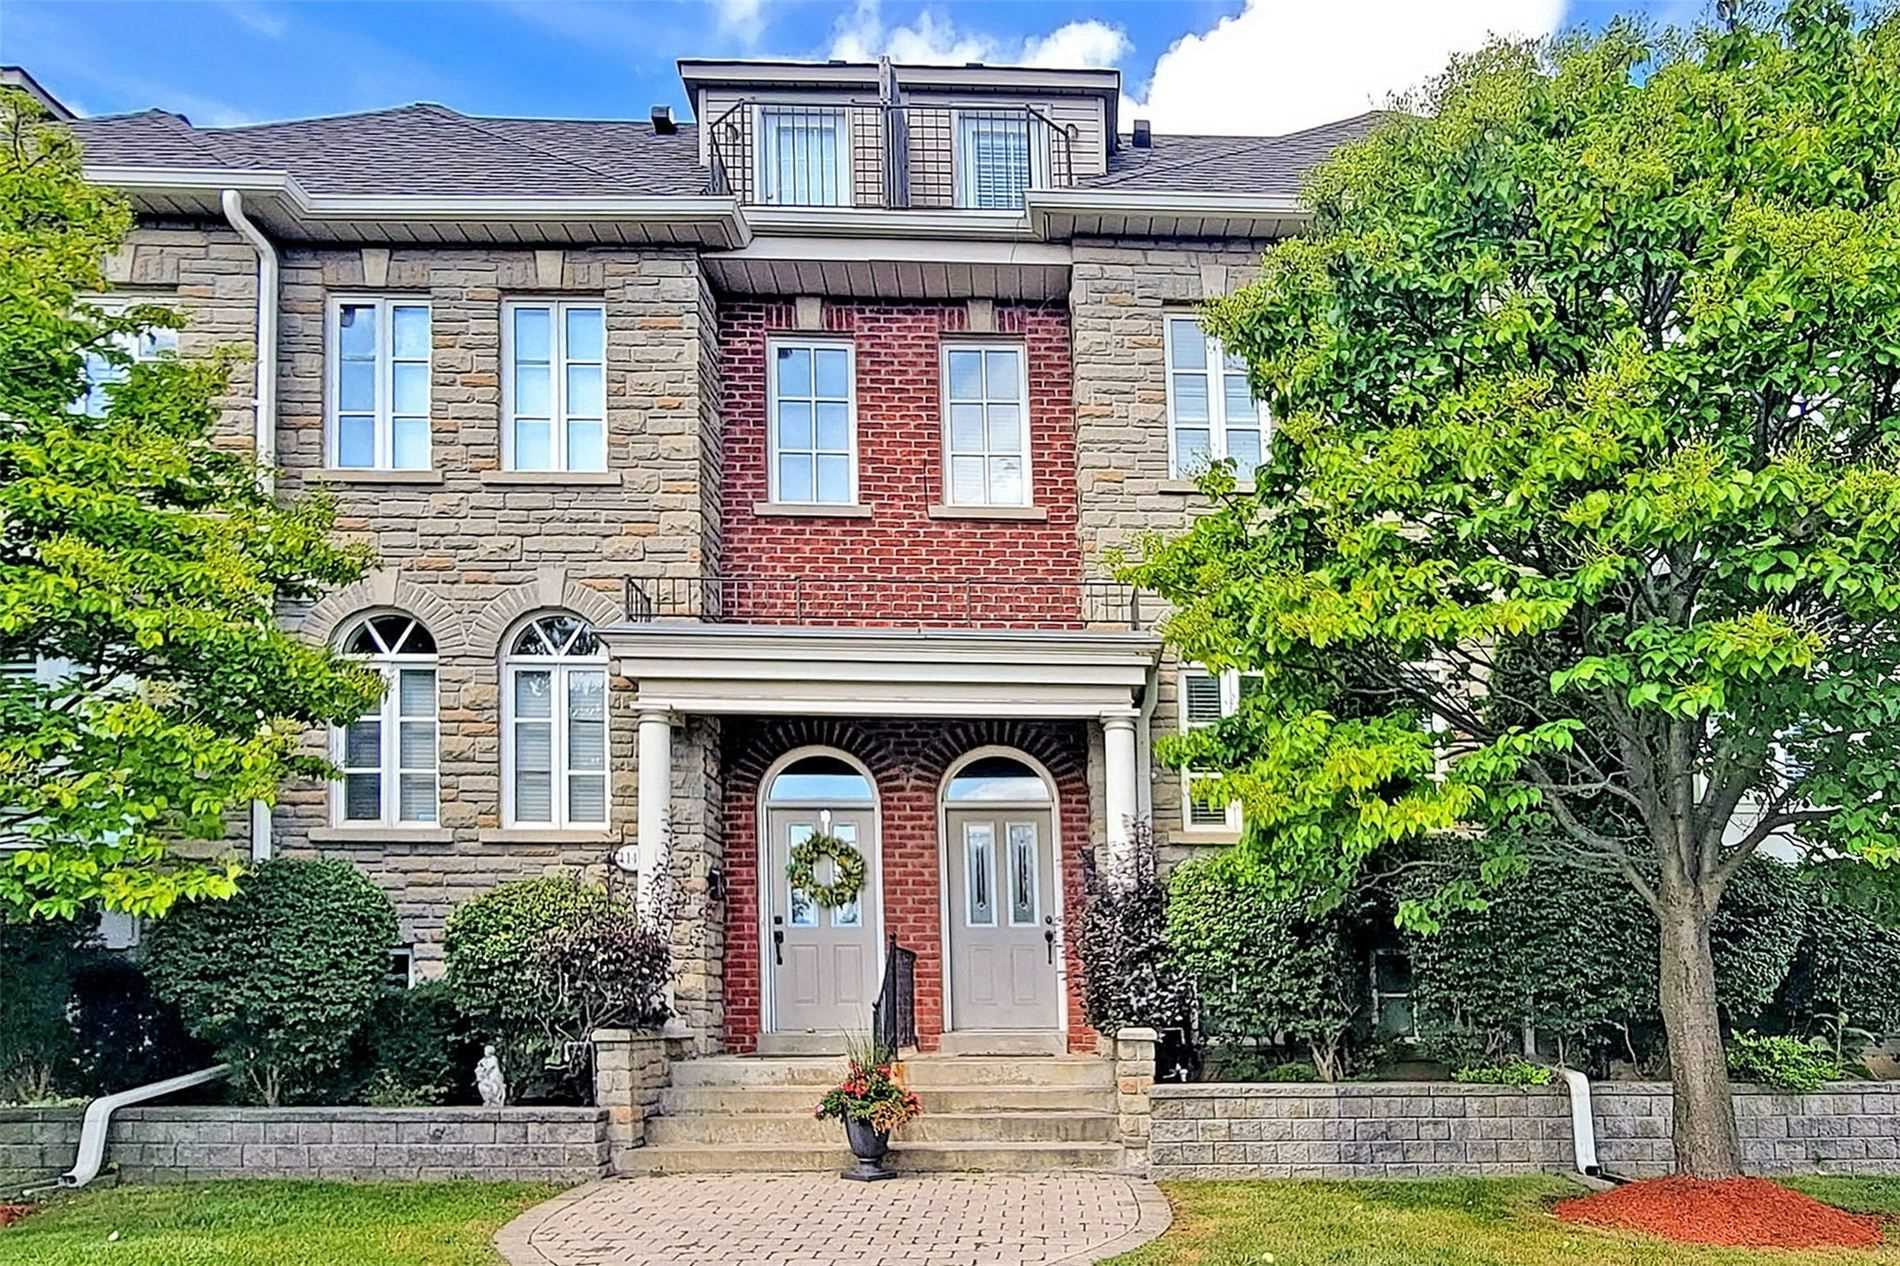 Condo Townhouse For Lease In Toronto , 3 Bedrooms Bedrooms, ,3 BathroomsBathrooms,Condo Townhouse,For Lease,4,Evans